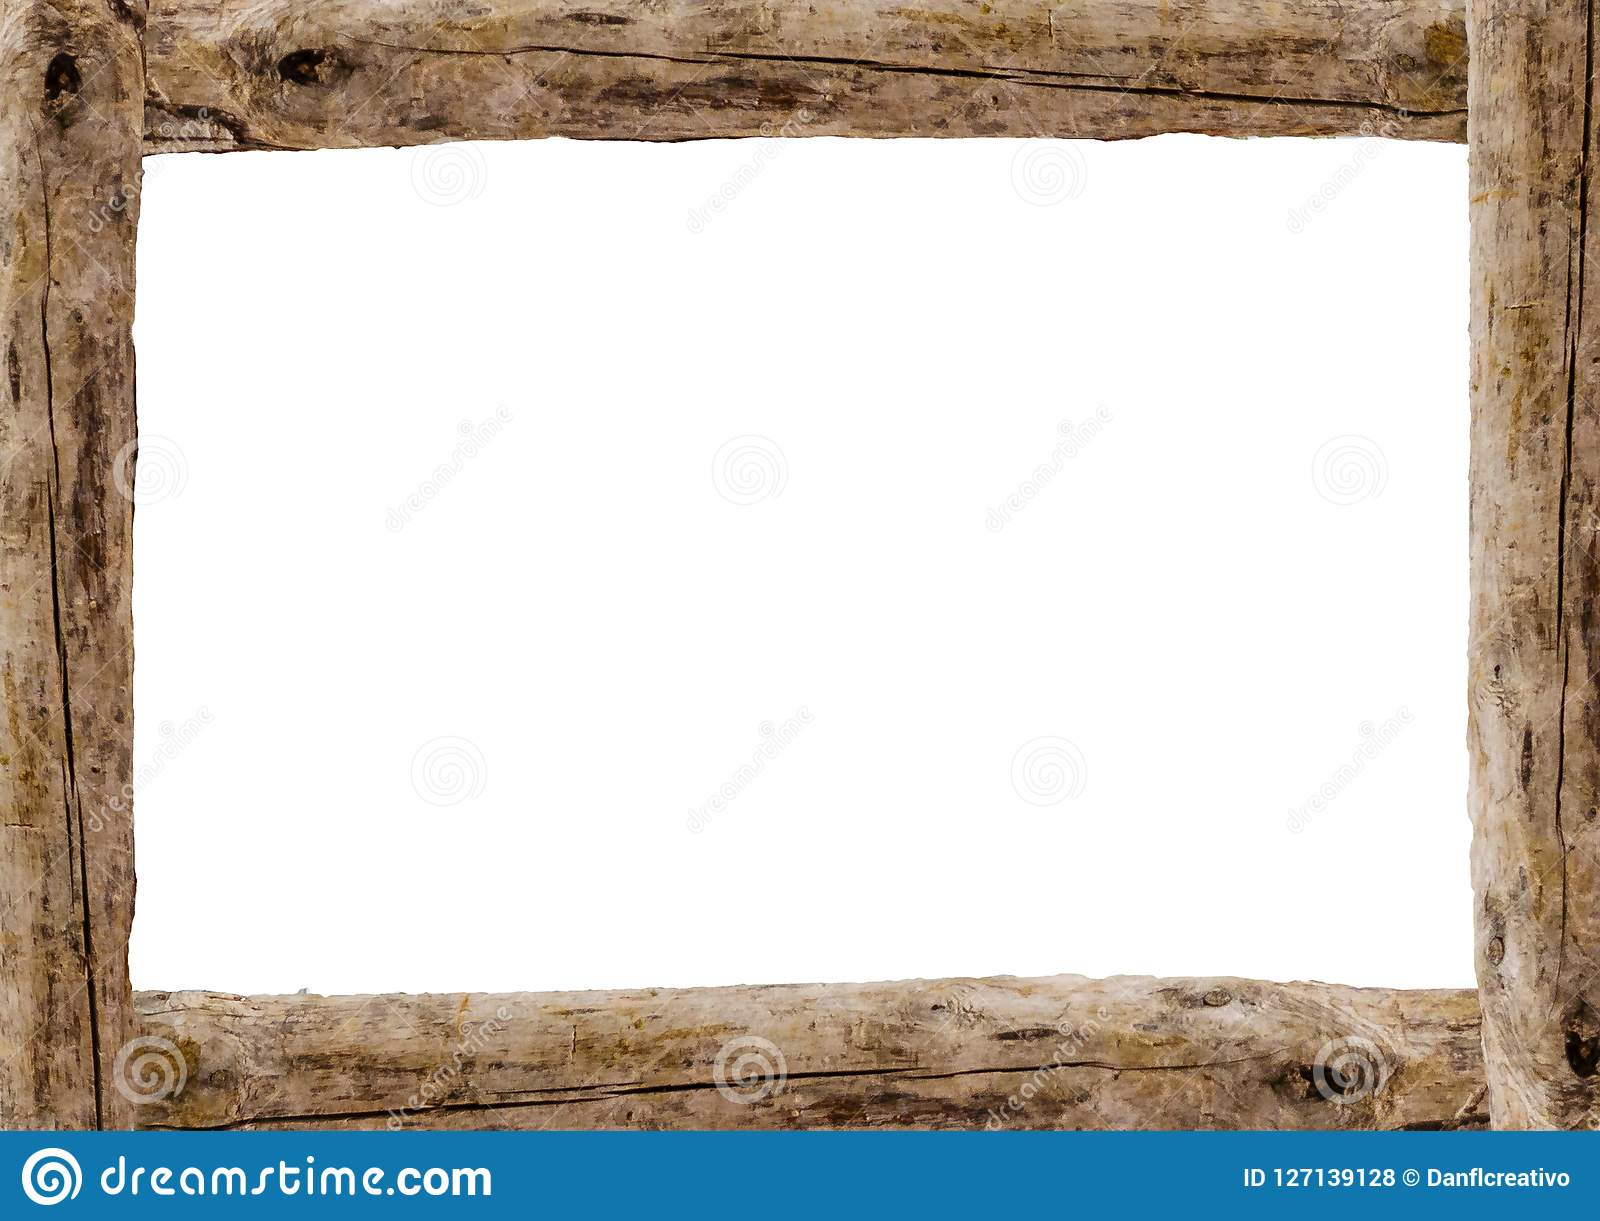 Landscape Blank Frame With Wooden Edges Stock Photo - Image of ...